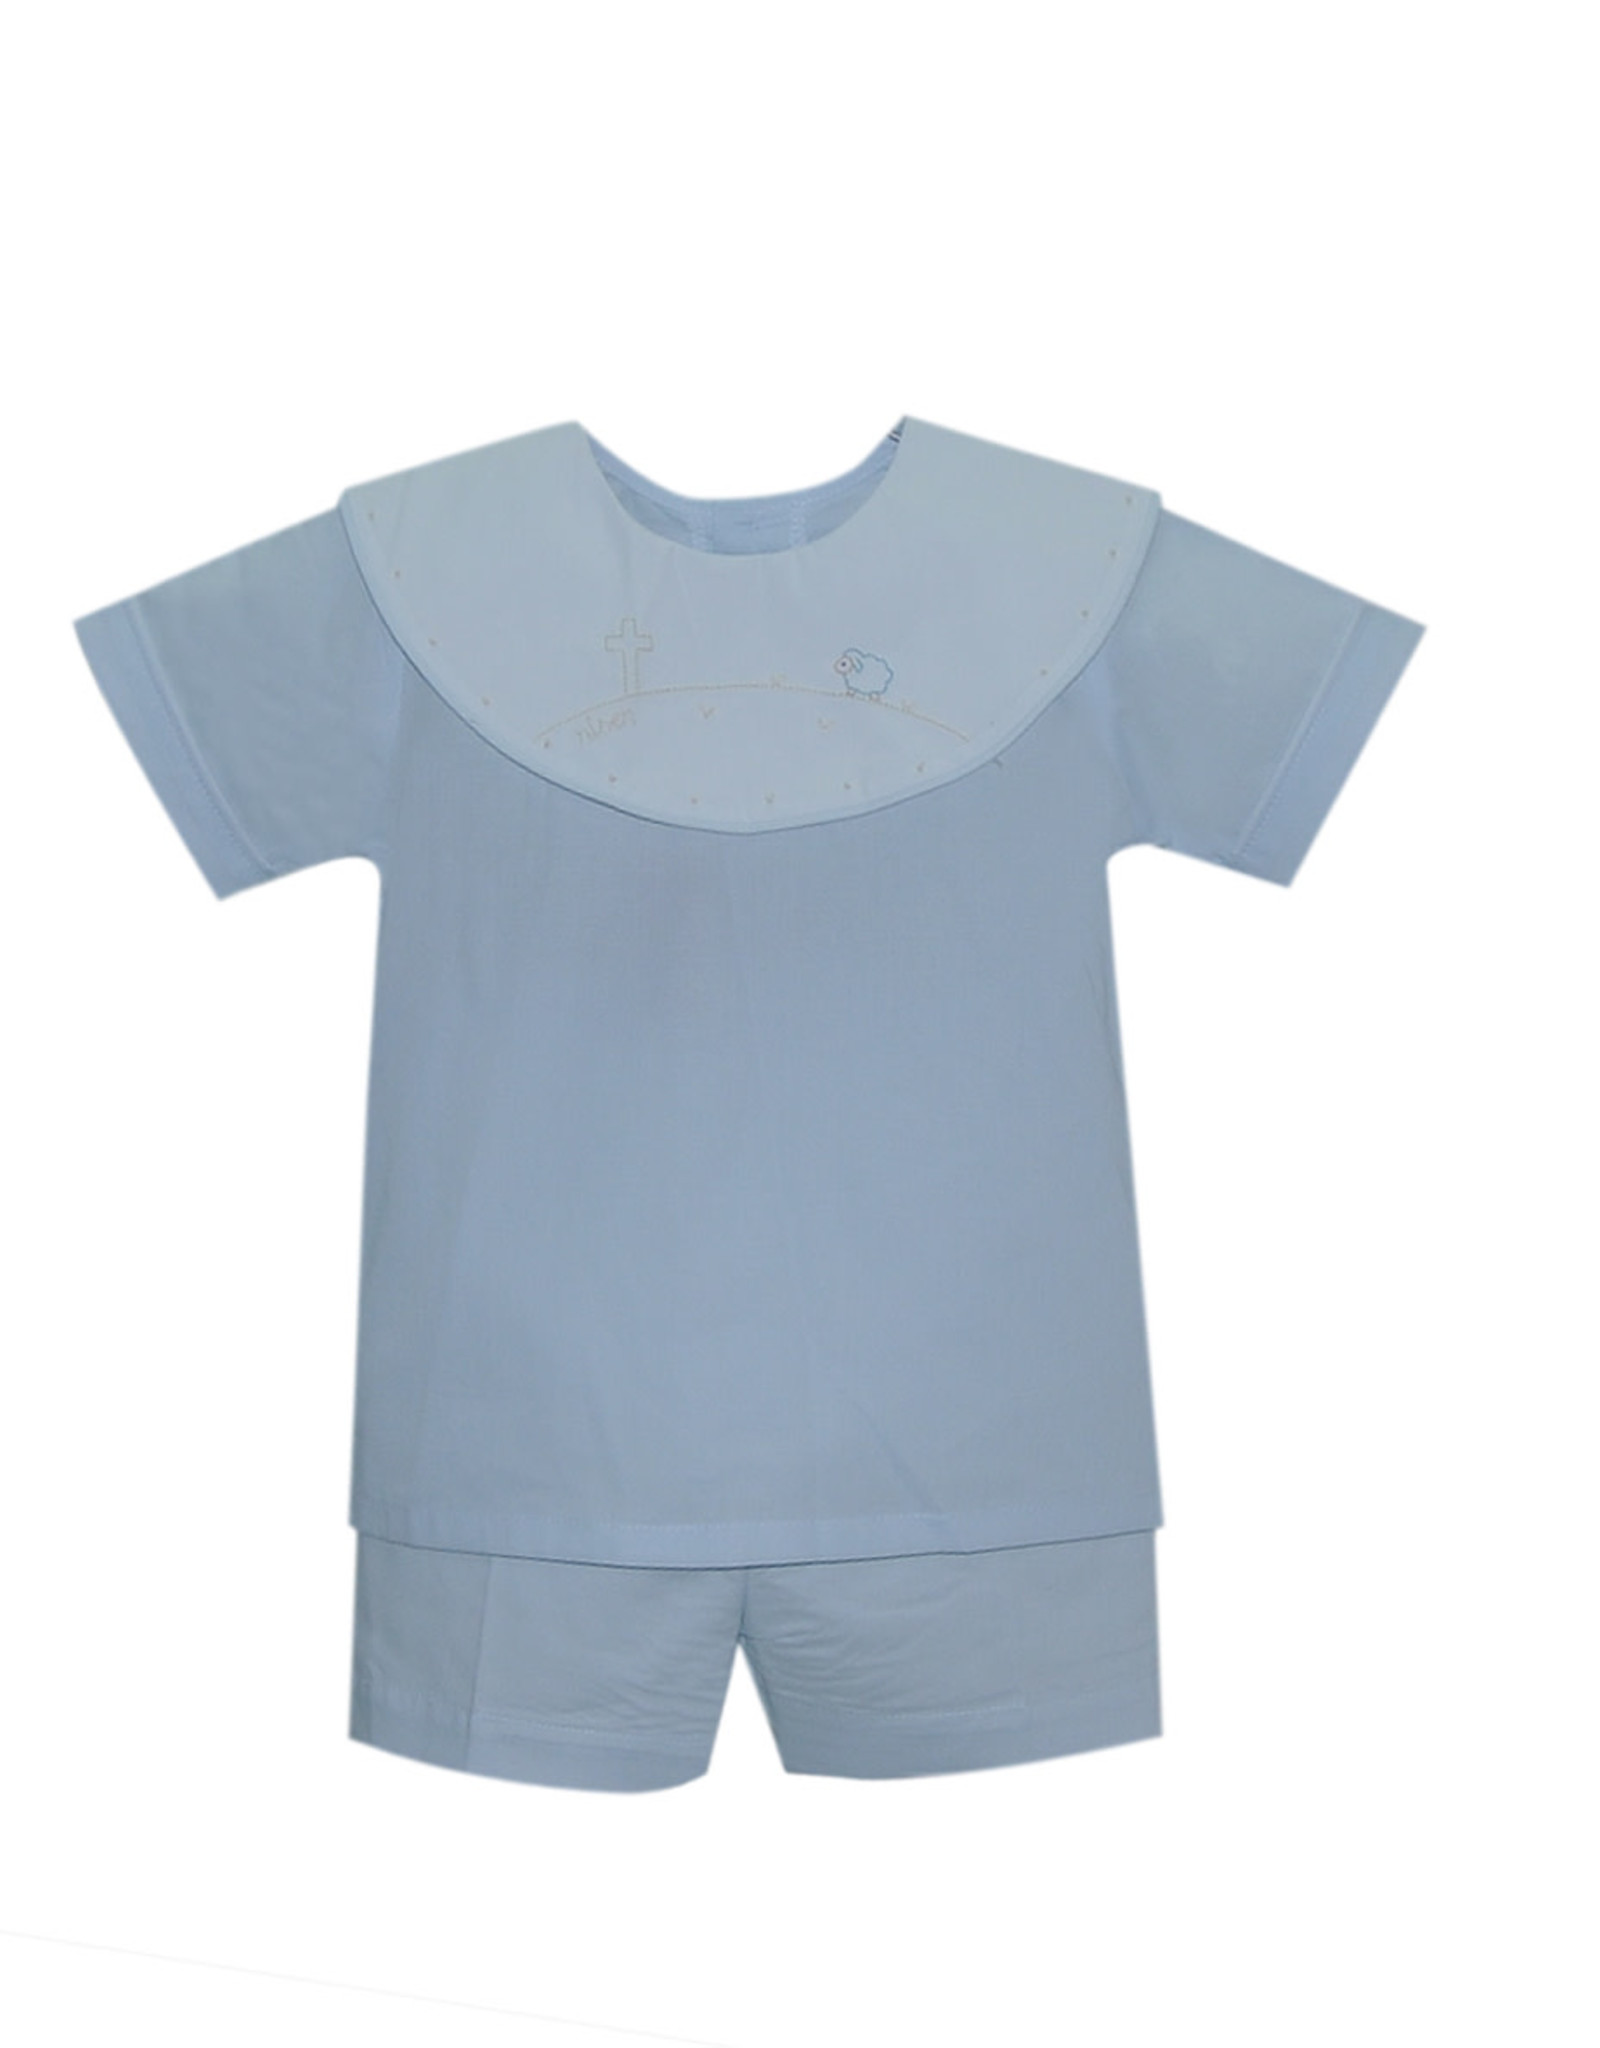 LullabySet Oliver Risen Blue Short Set